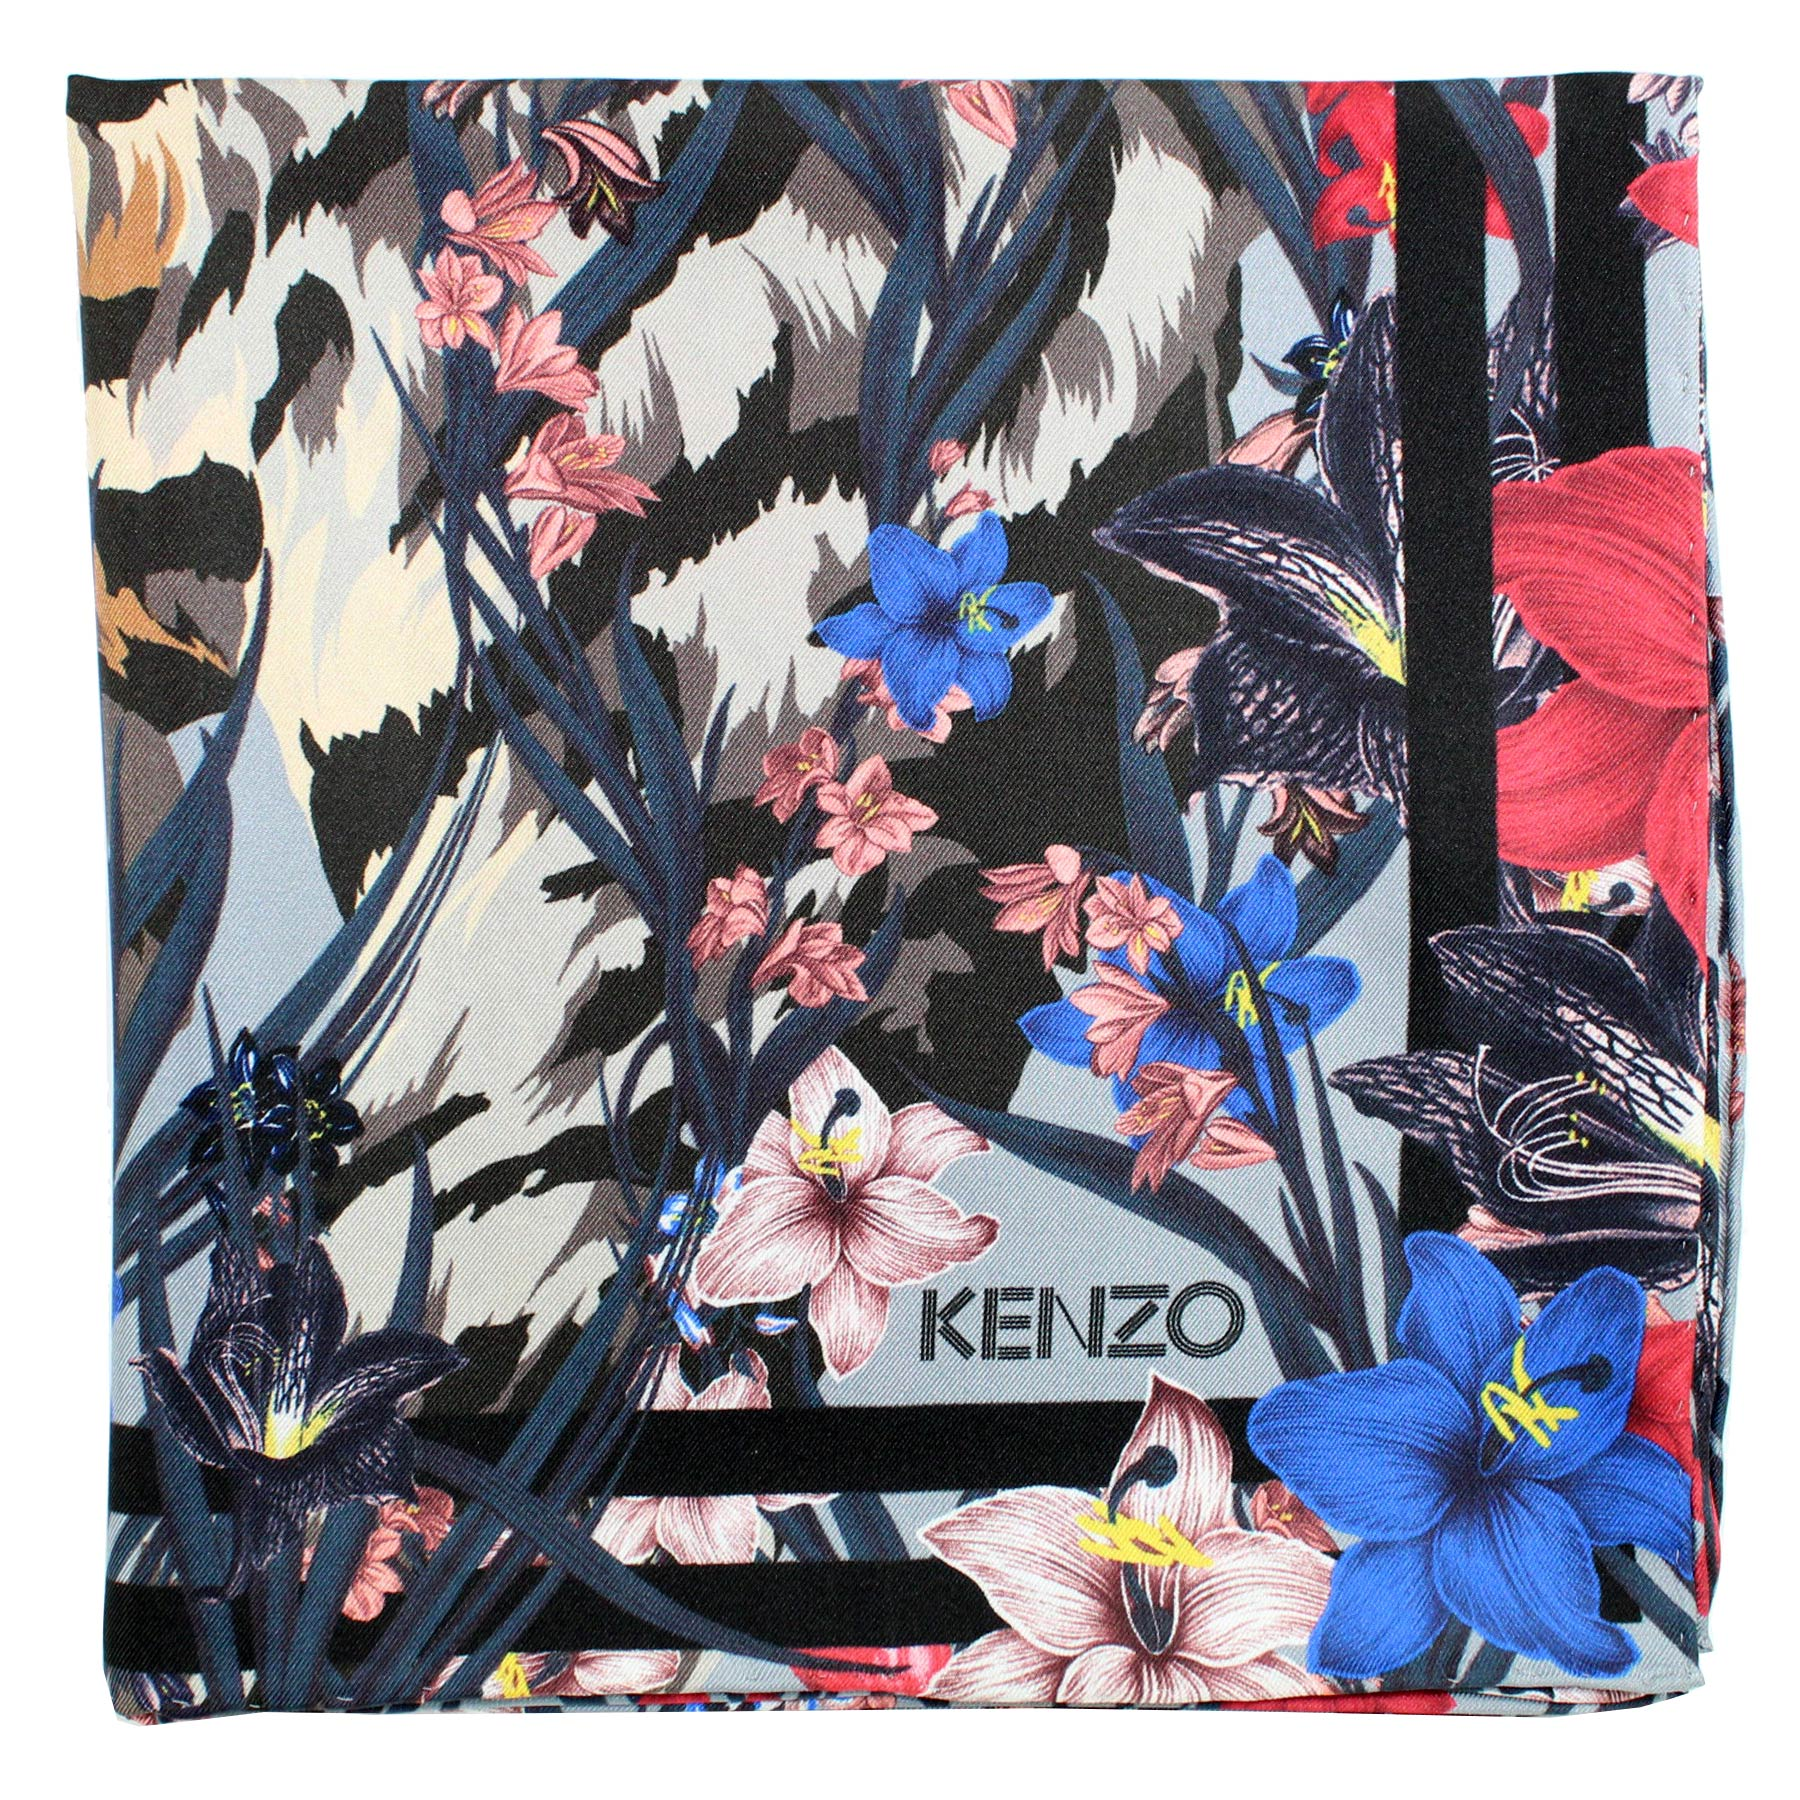 Kenzo Scarf Gray Flowers - Large Silk Square Scarf